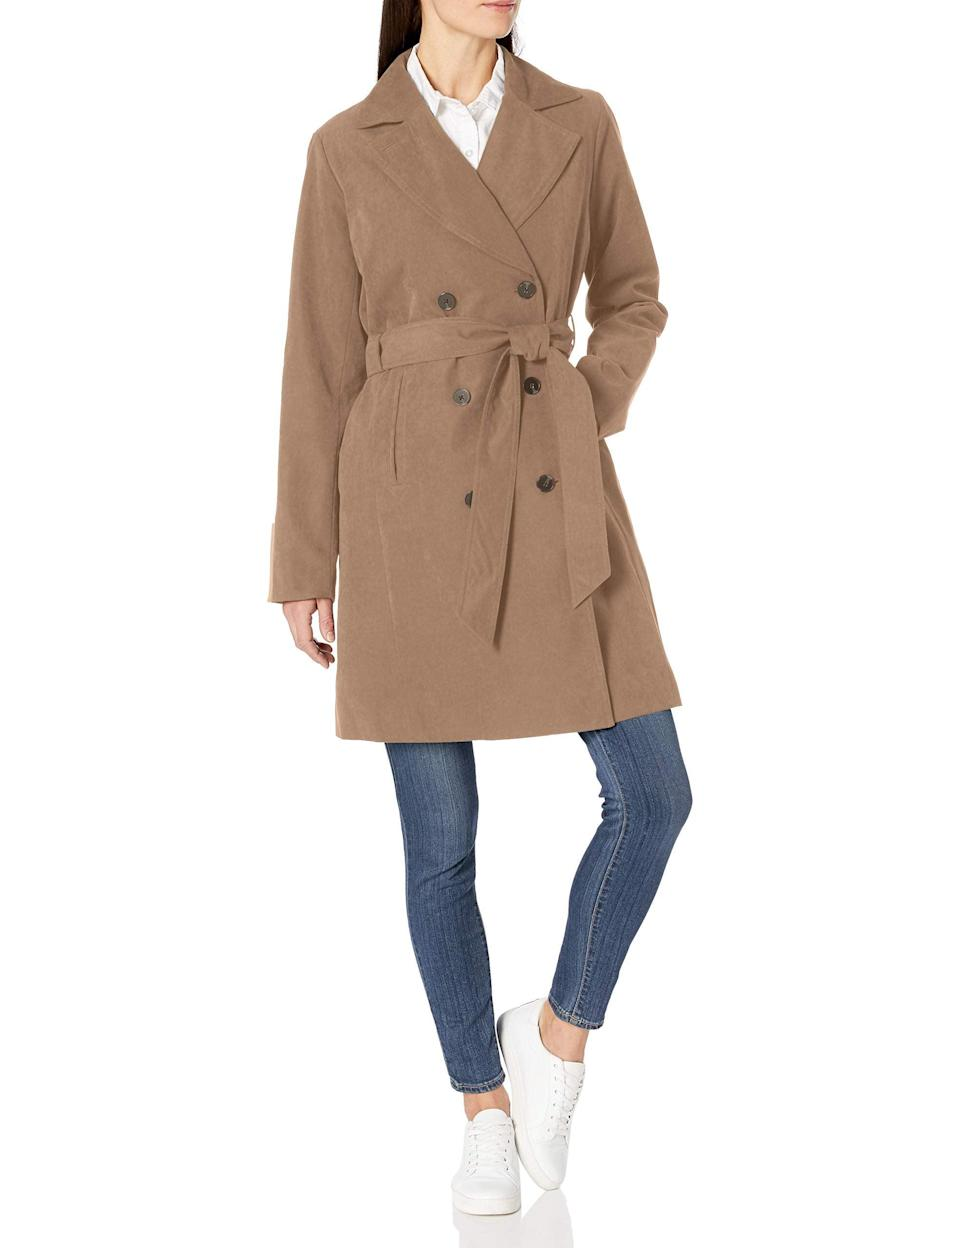 "<br><br><strong>Amazon Essentials</strong> Water-Resistant Trench Coat, $, available at <a href=""https://amzn.to/2FpgJf1"" rel=""nofollow noopener"" target=""_blank"" data-ylk=""slk:Amazon Fashion"" class=""link rapid-noclick-resp"">Amazon Fashion</a>"